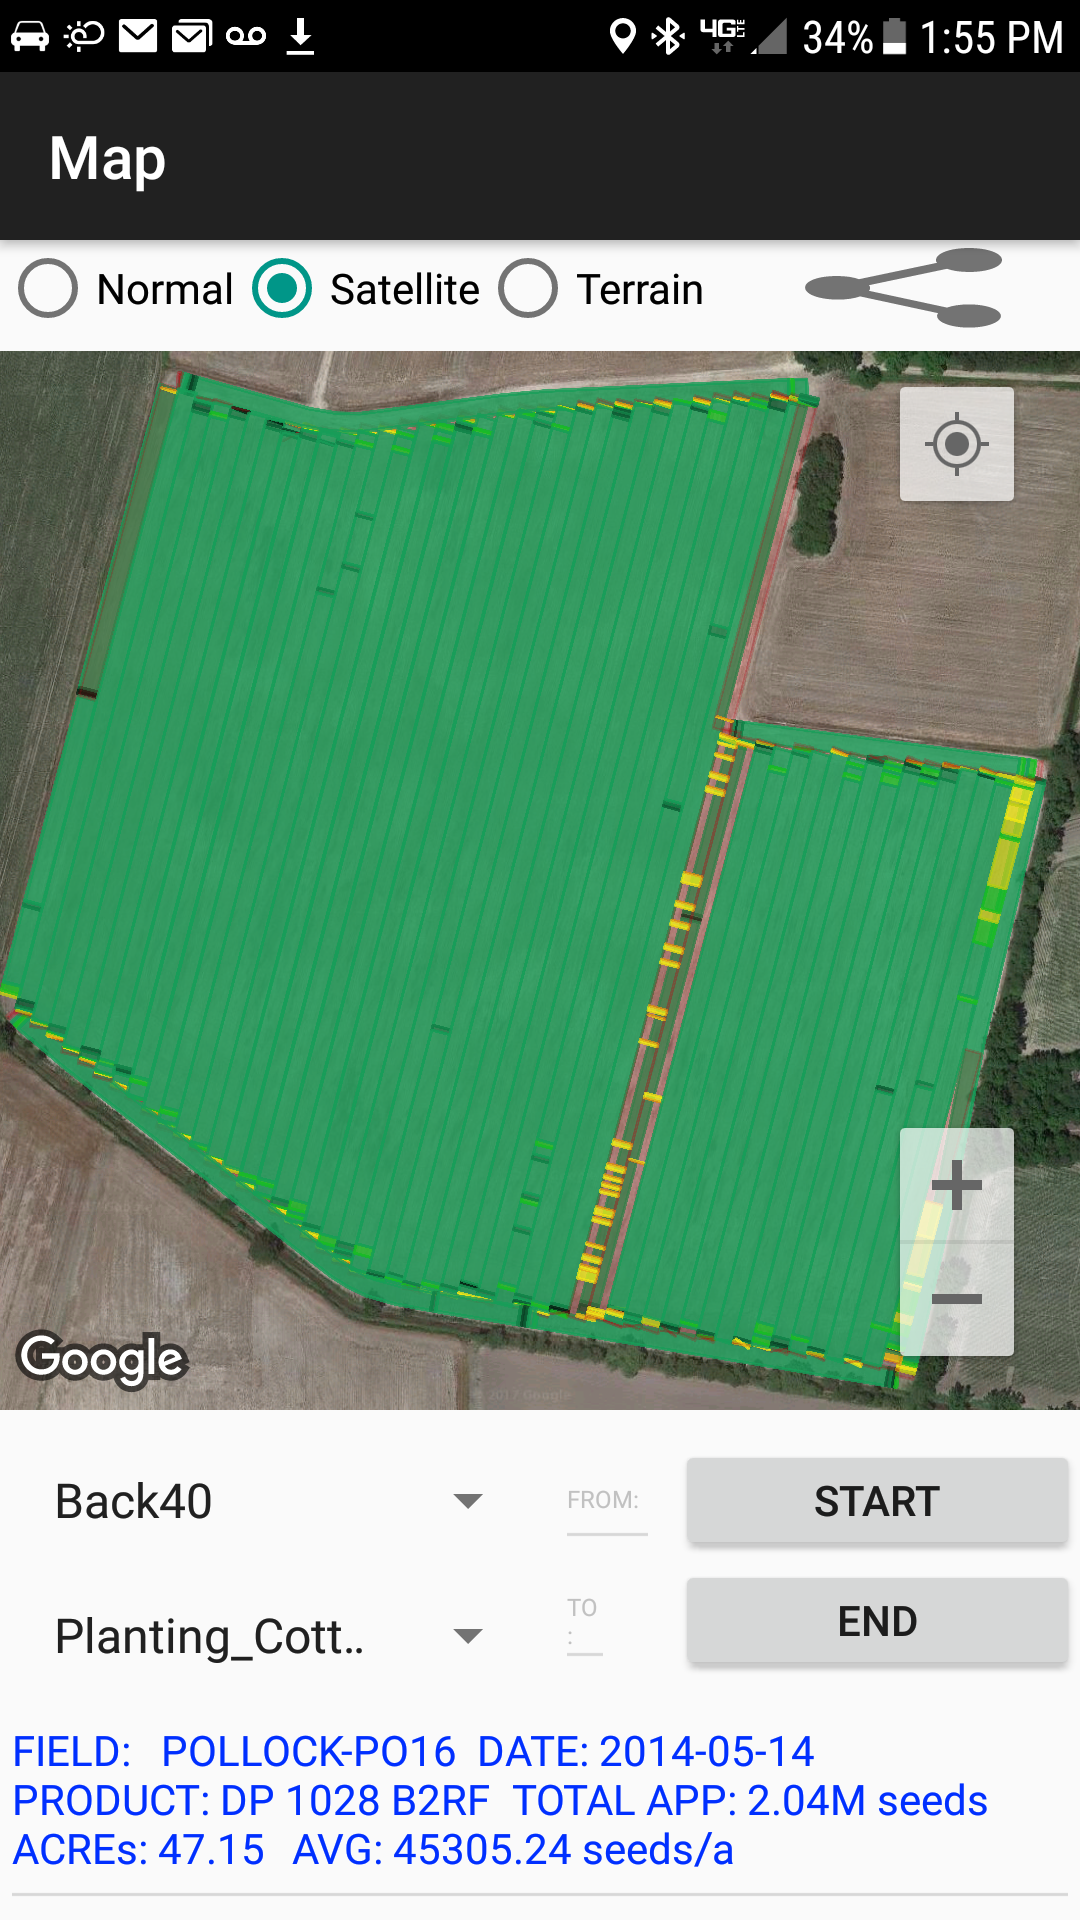 AGBRIDGE™ provides as-applied maps via the mobile app minutes after agbridging!